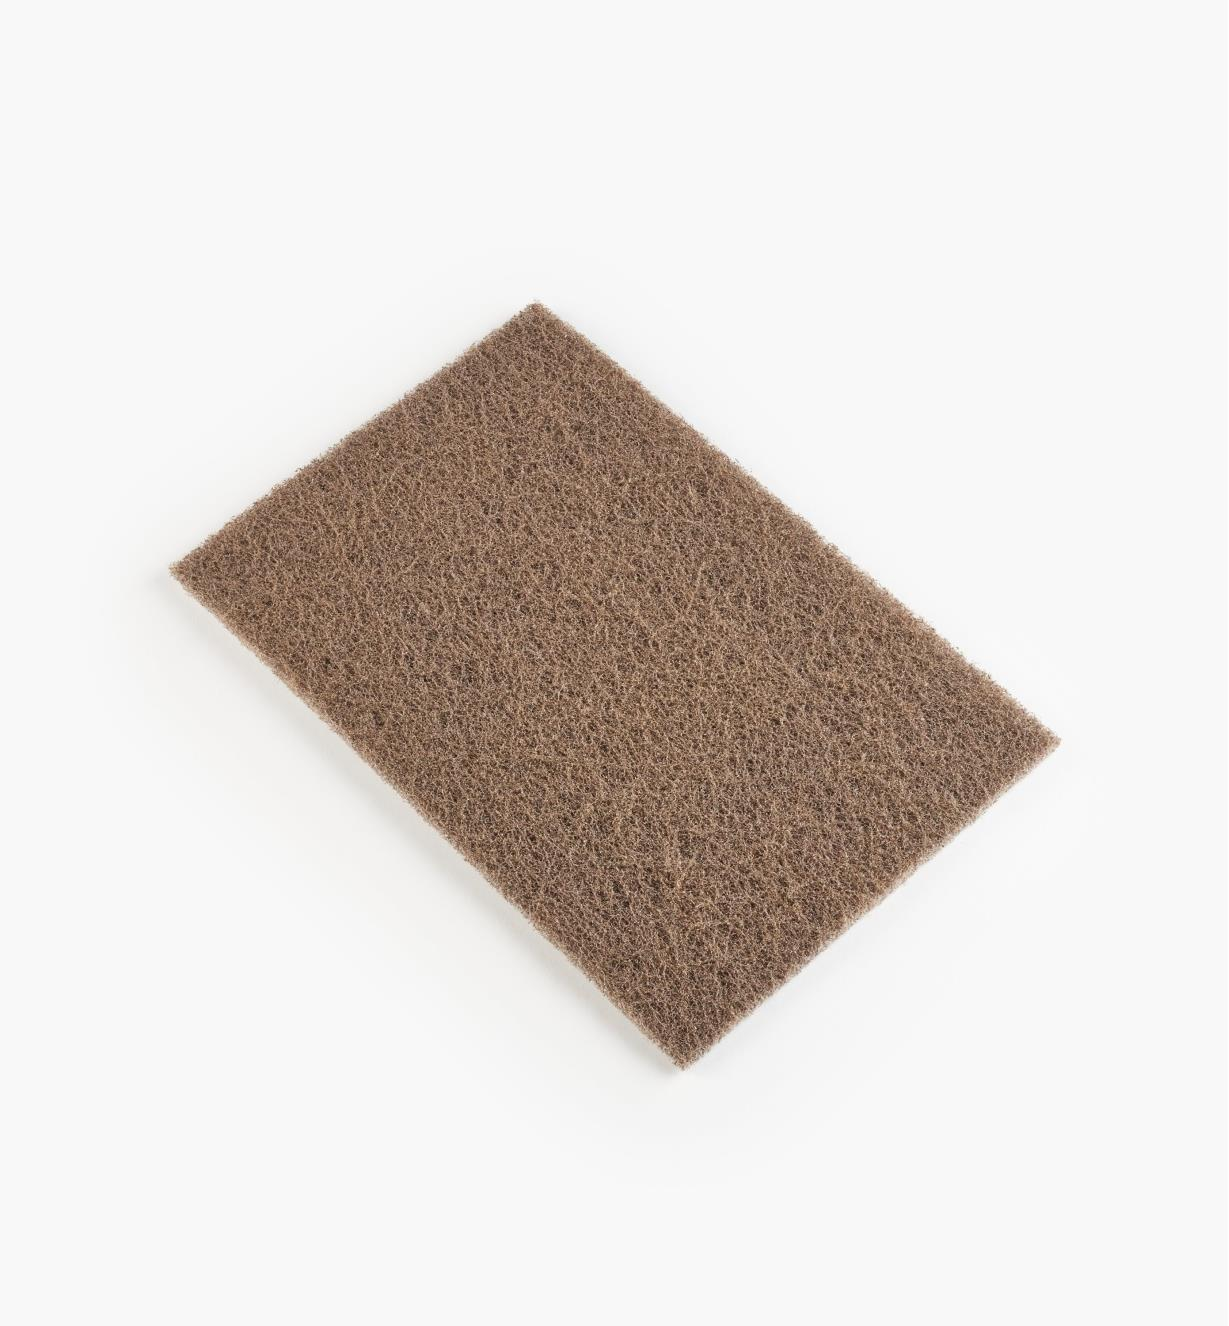 54K0303 - 3M Rubbing Pad, Medium Aluminum Oxide